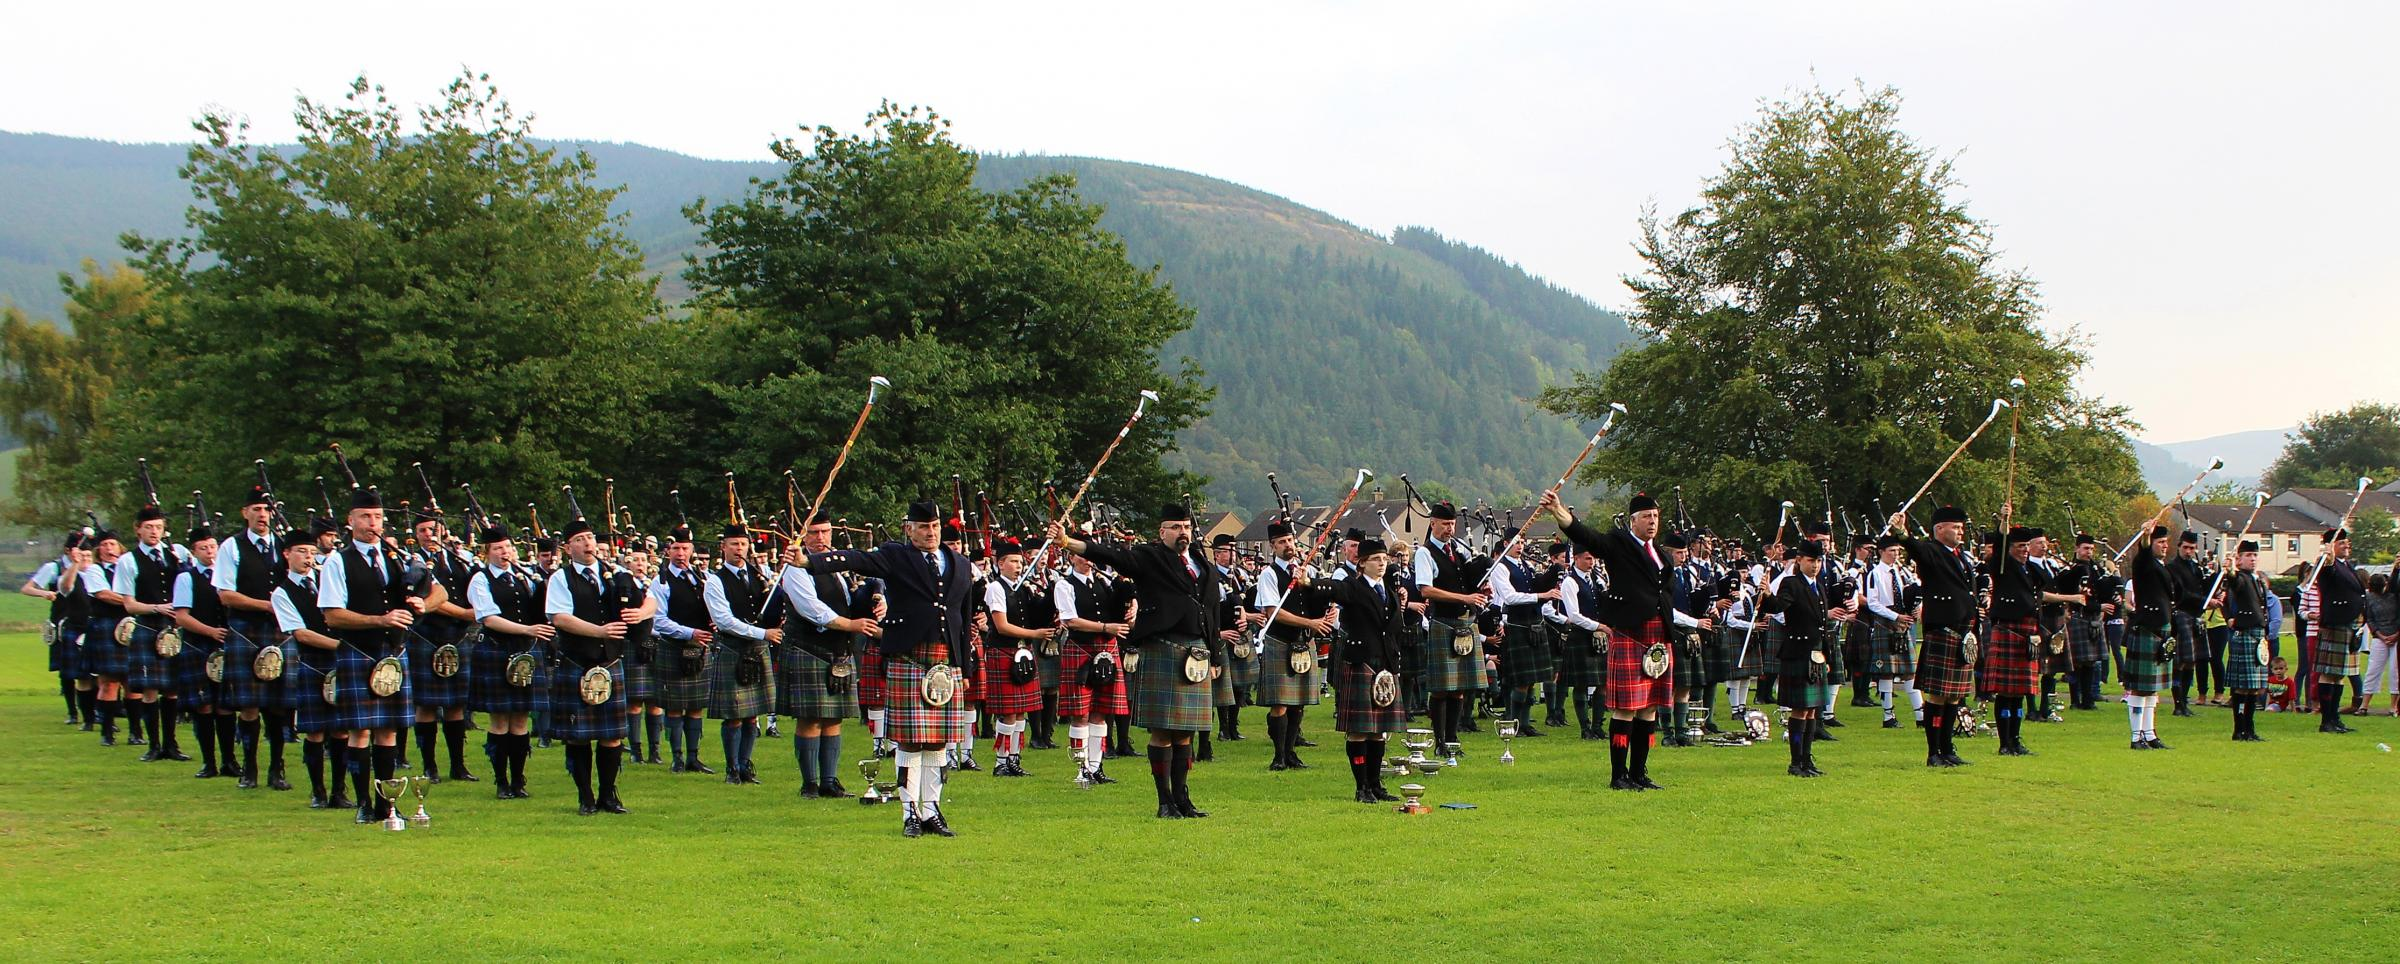 Innerleithen Pipe Band Championships to be held on Saturday